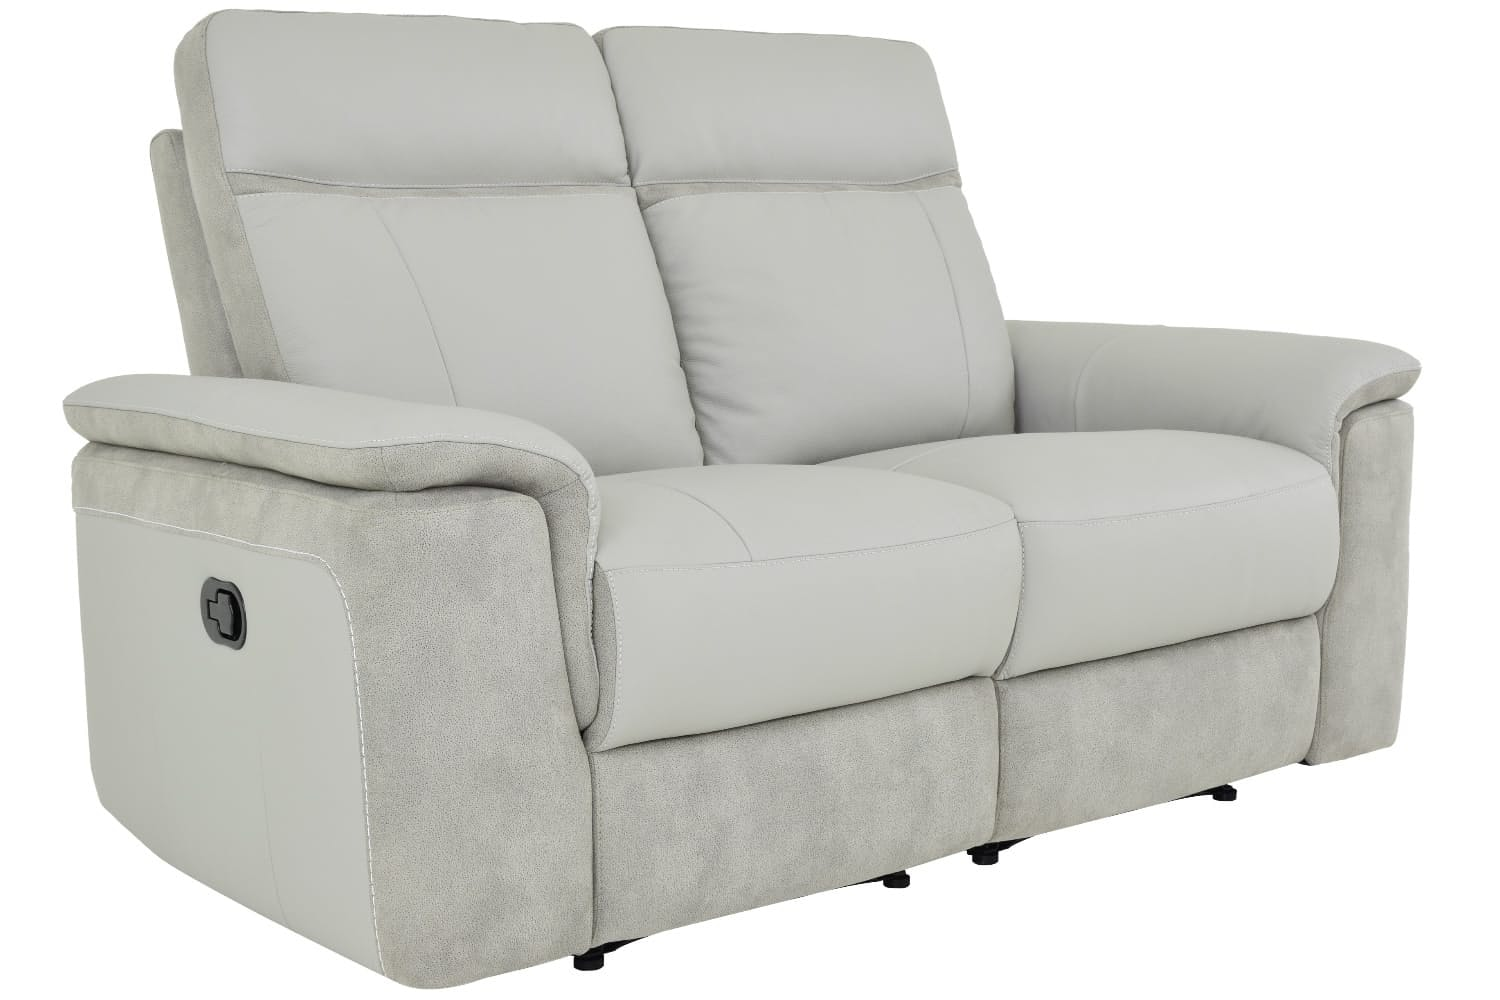 Briggs 2 Seater Recliner Sofa